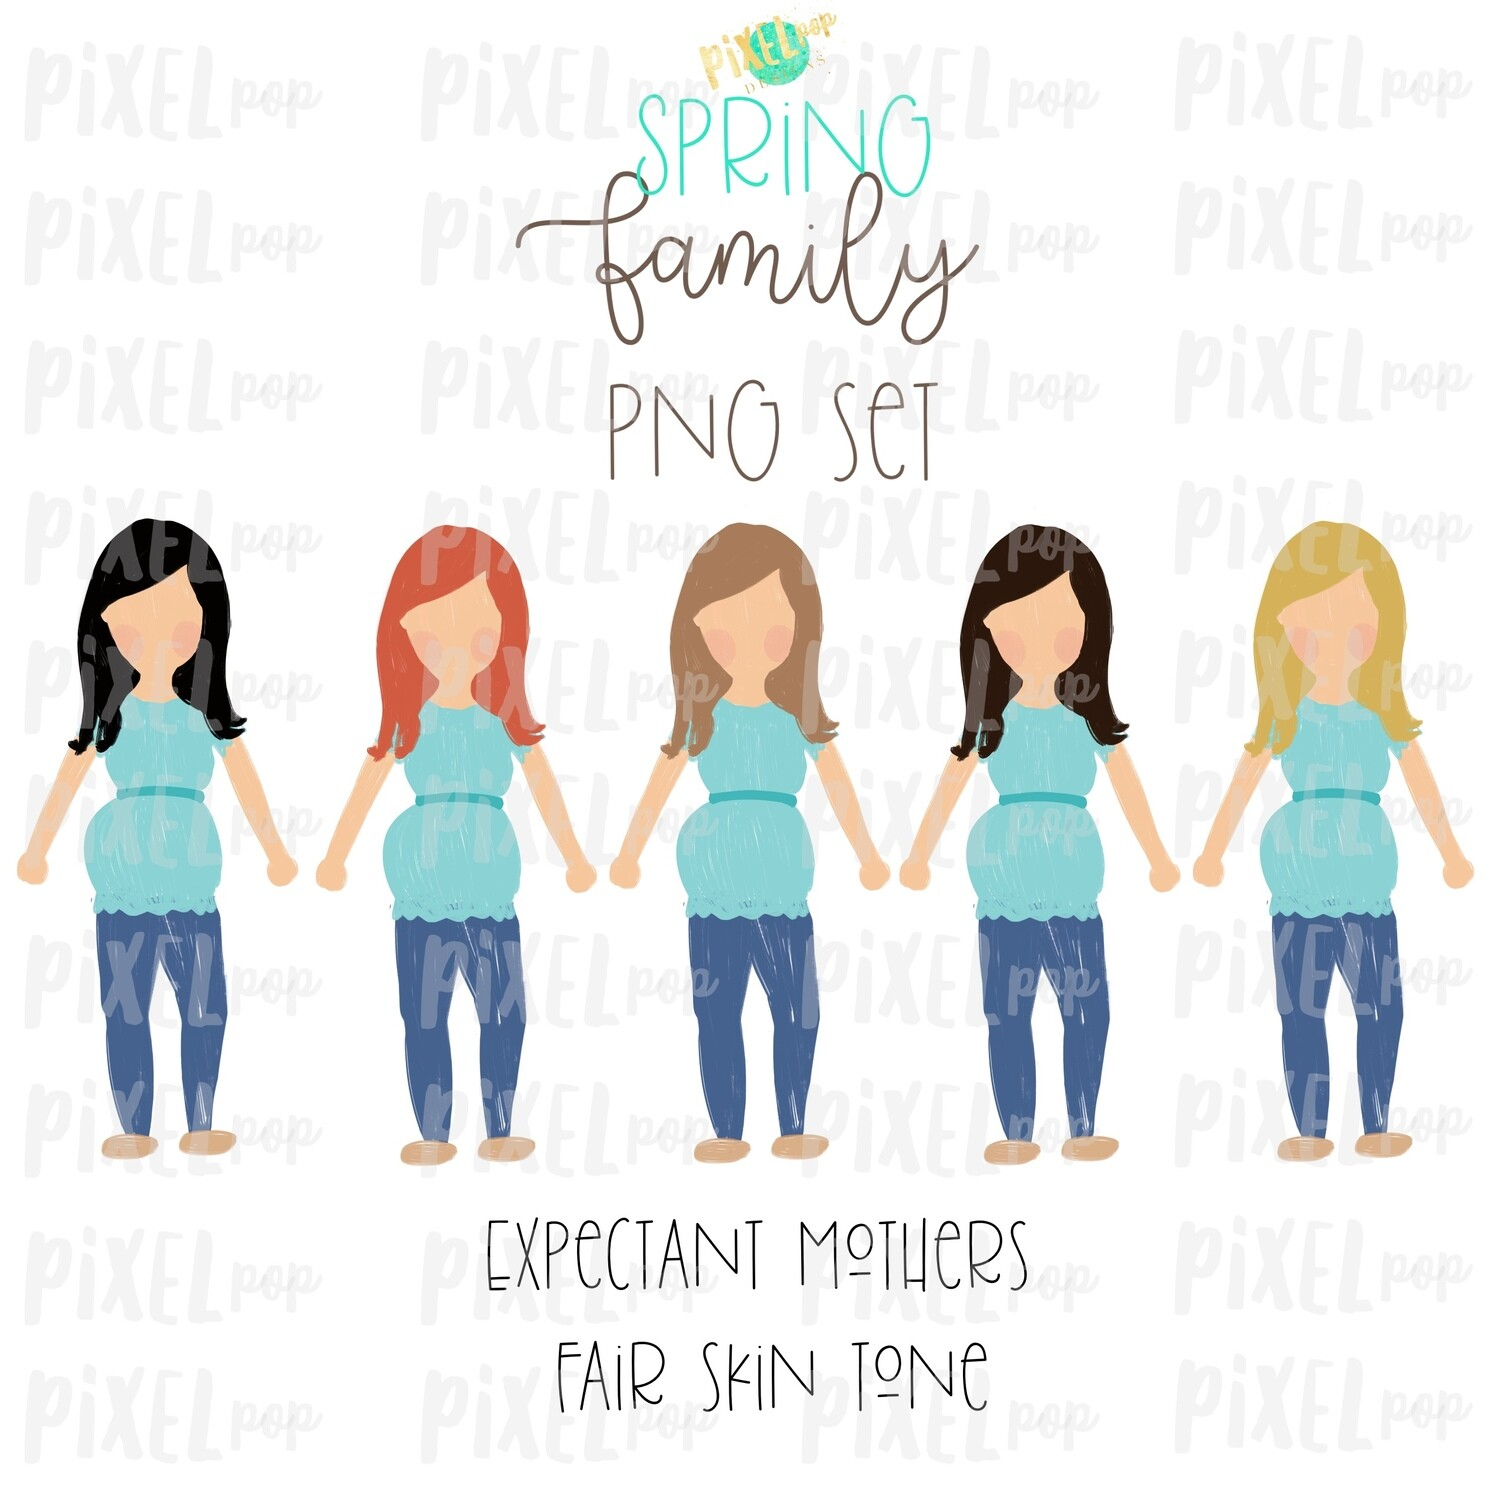 Expectant Pregnant Mothers SPRING Fair Skin Tone Stick People Figure Members PNG | Family Ornament | Family Portrait Images | Digital Art